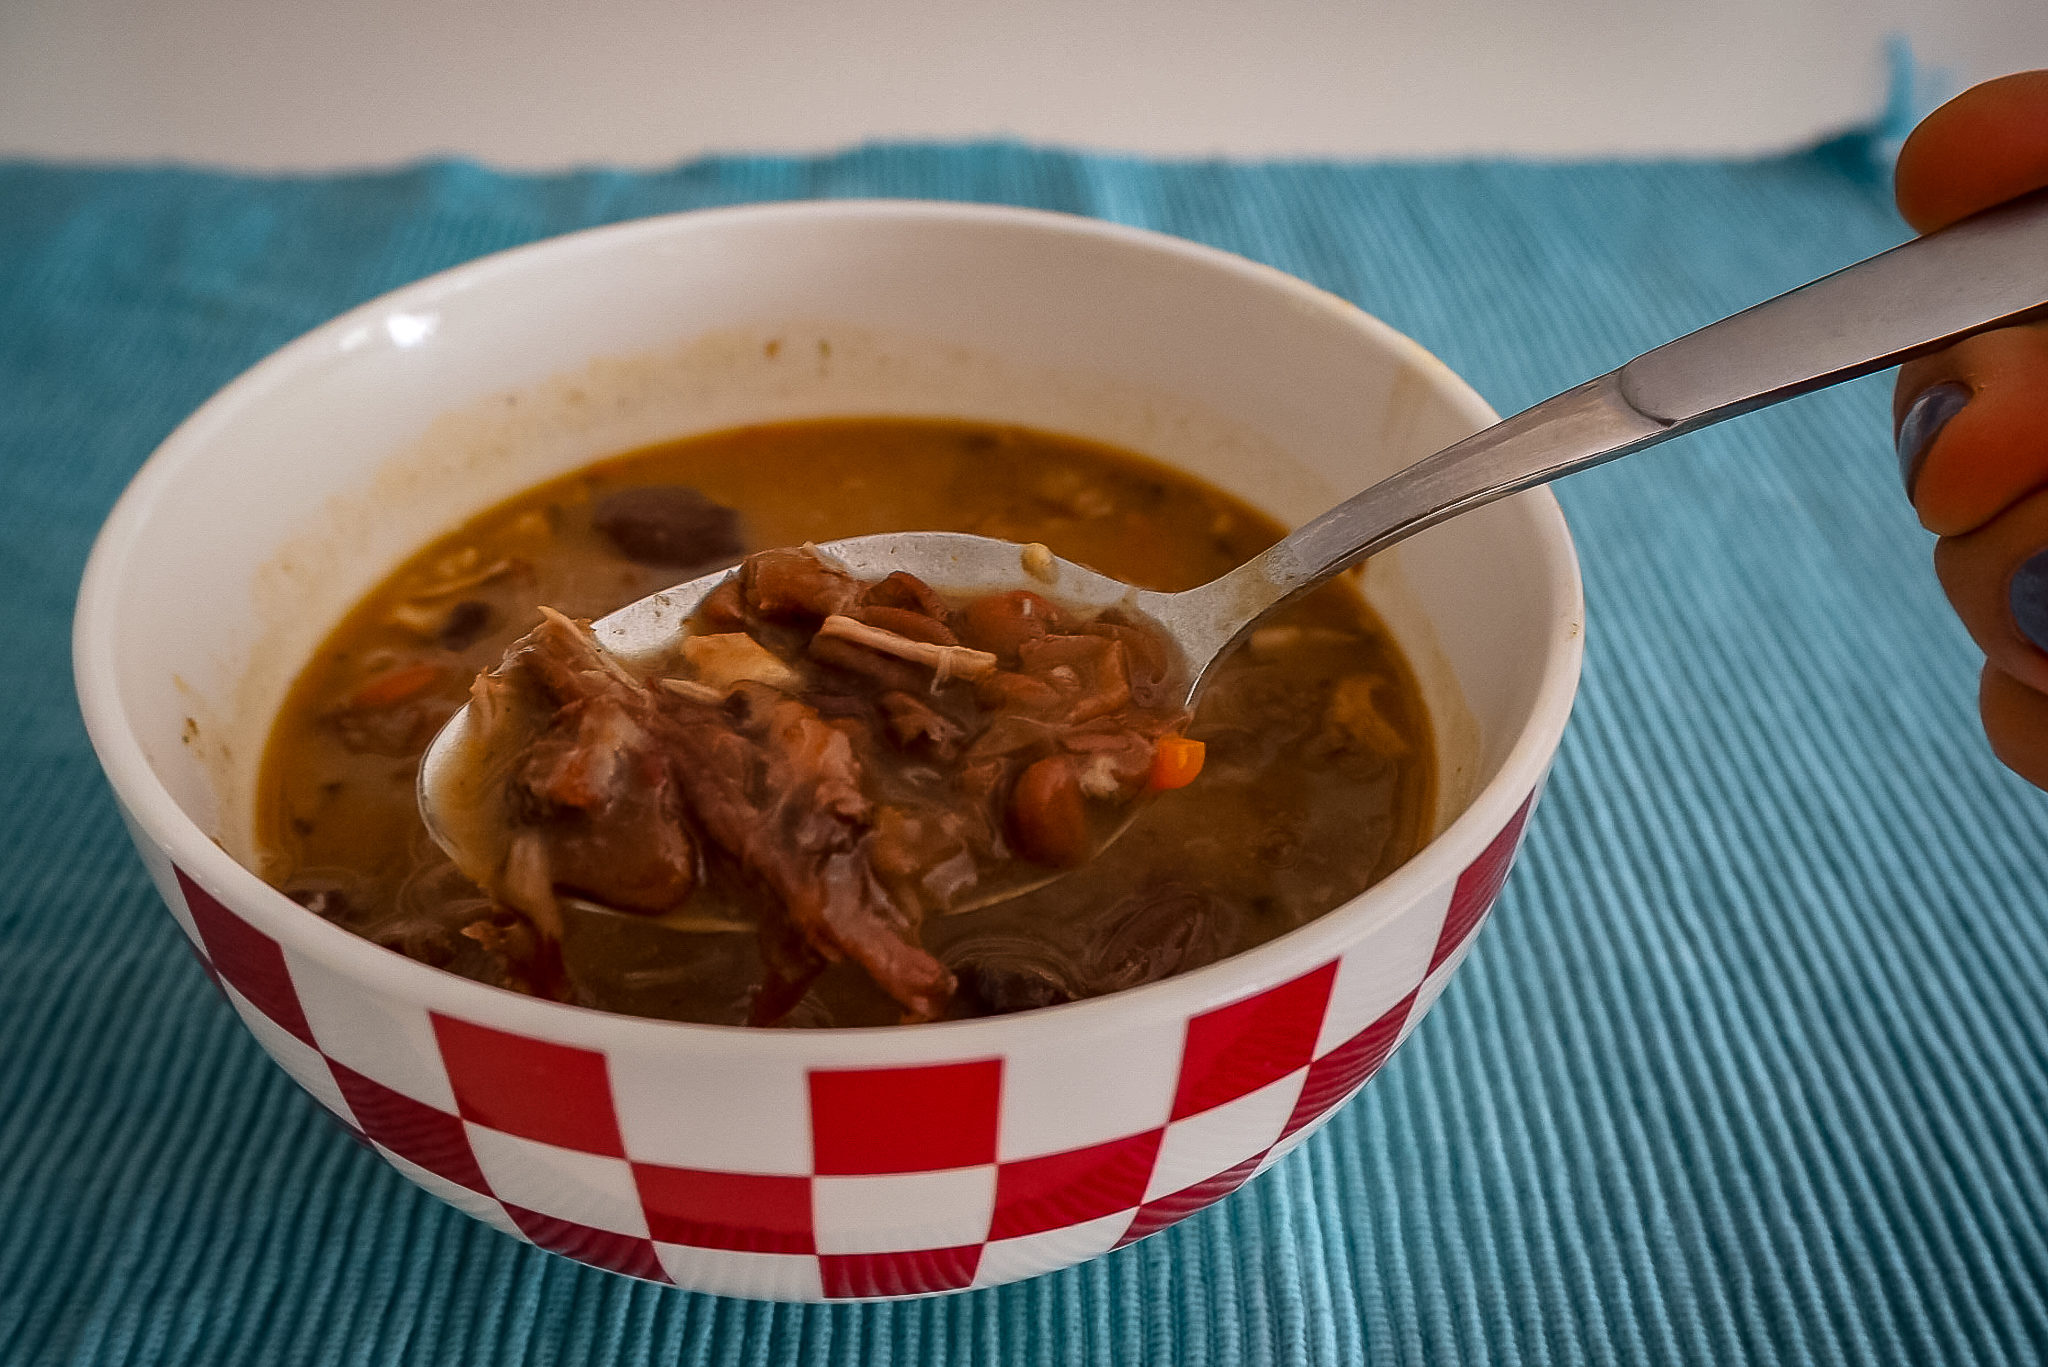 Croatian cuisine - bean soup